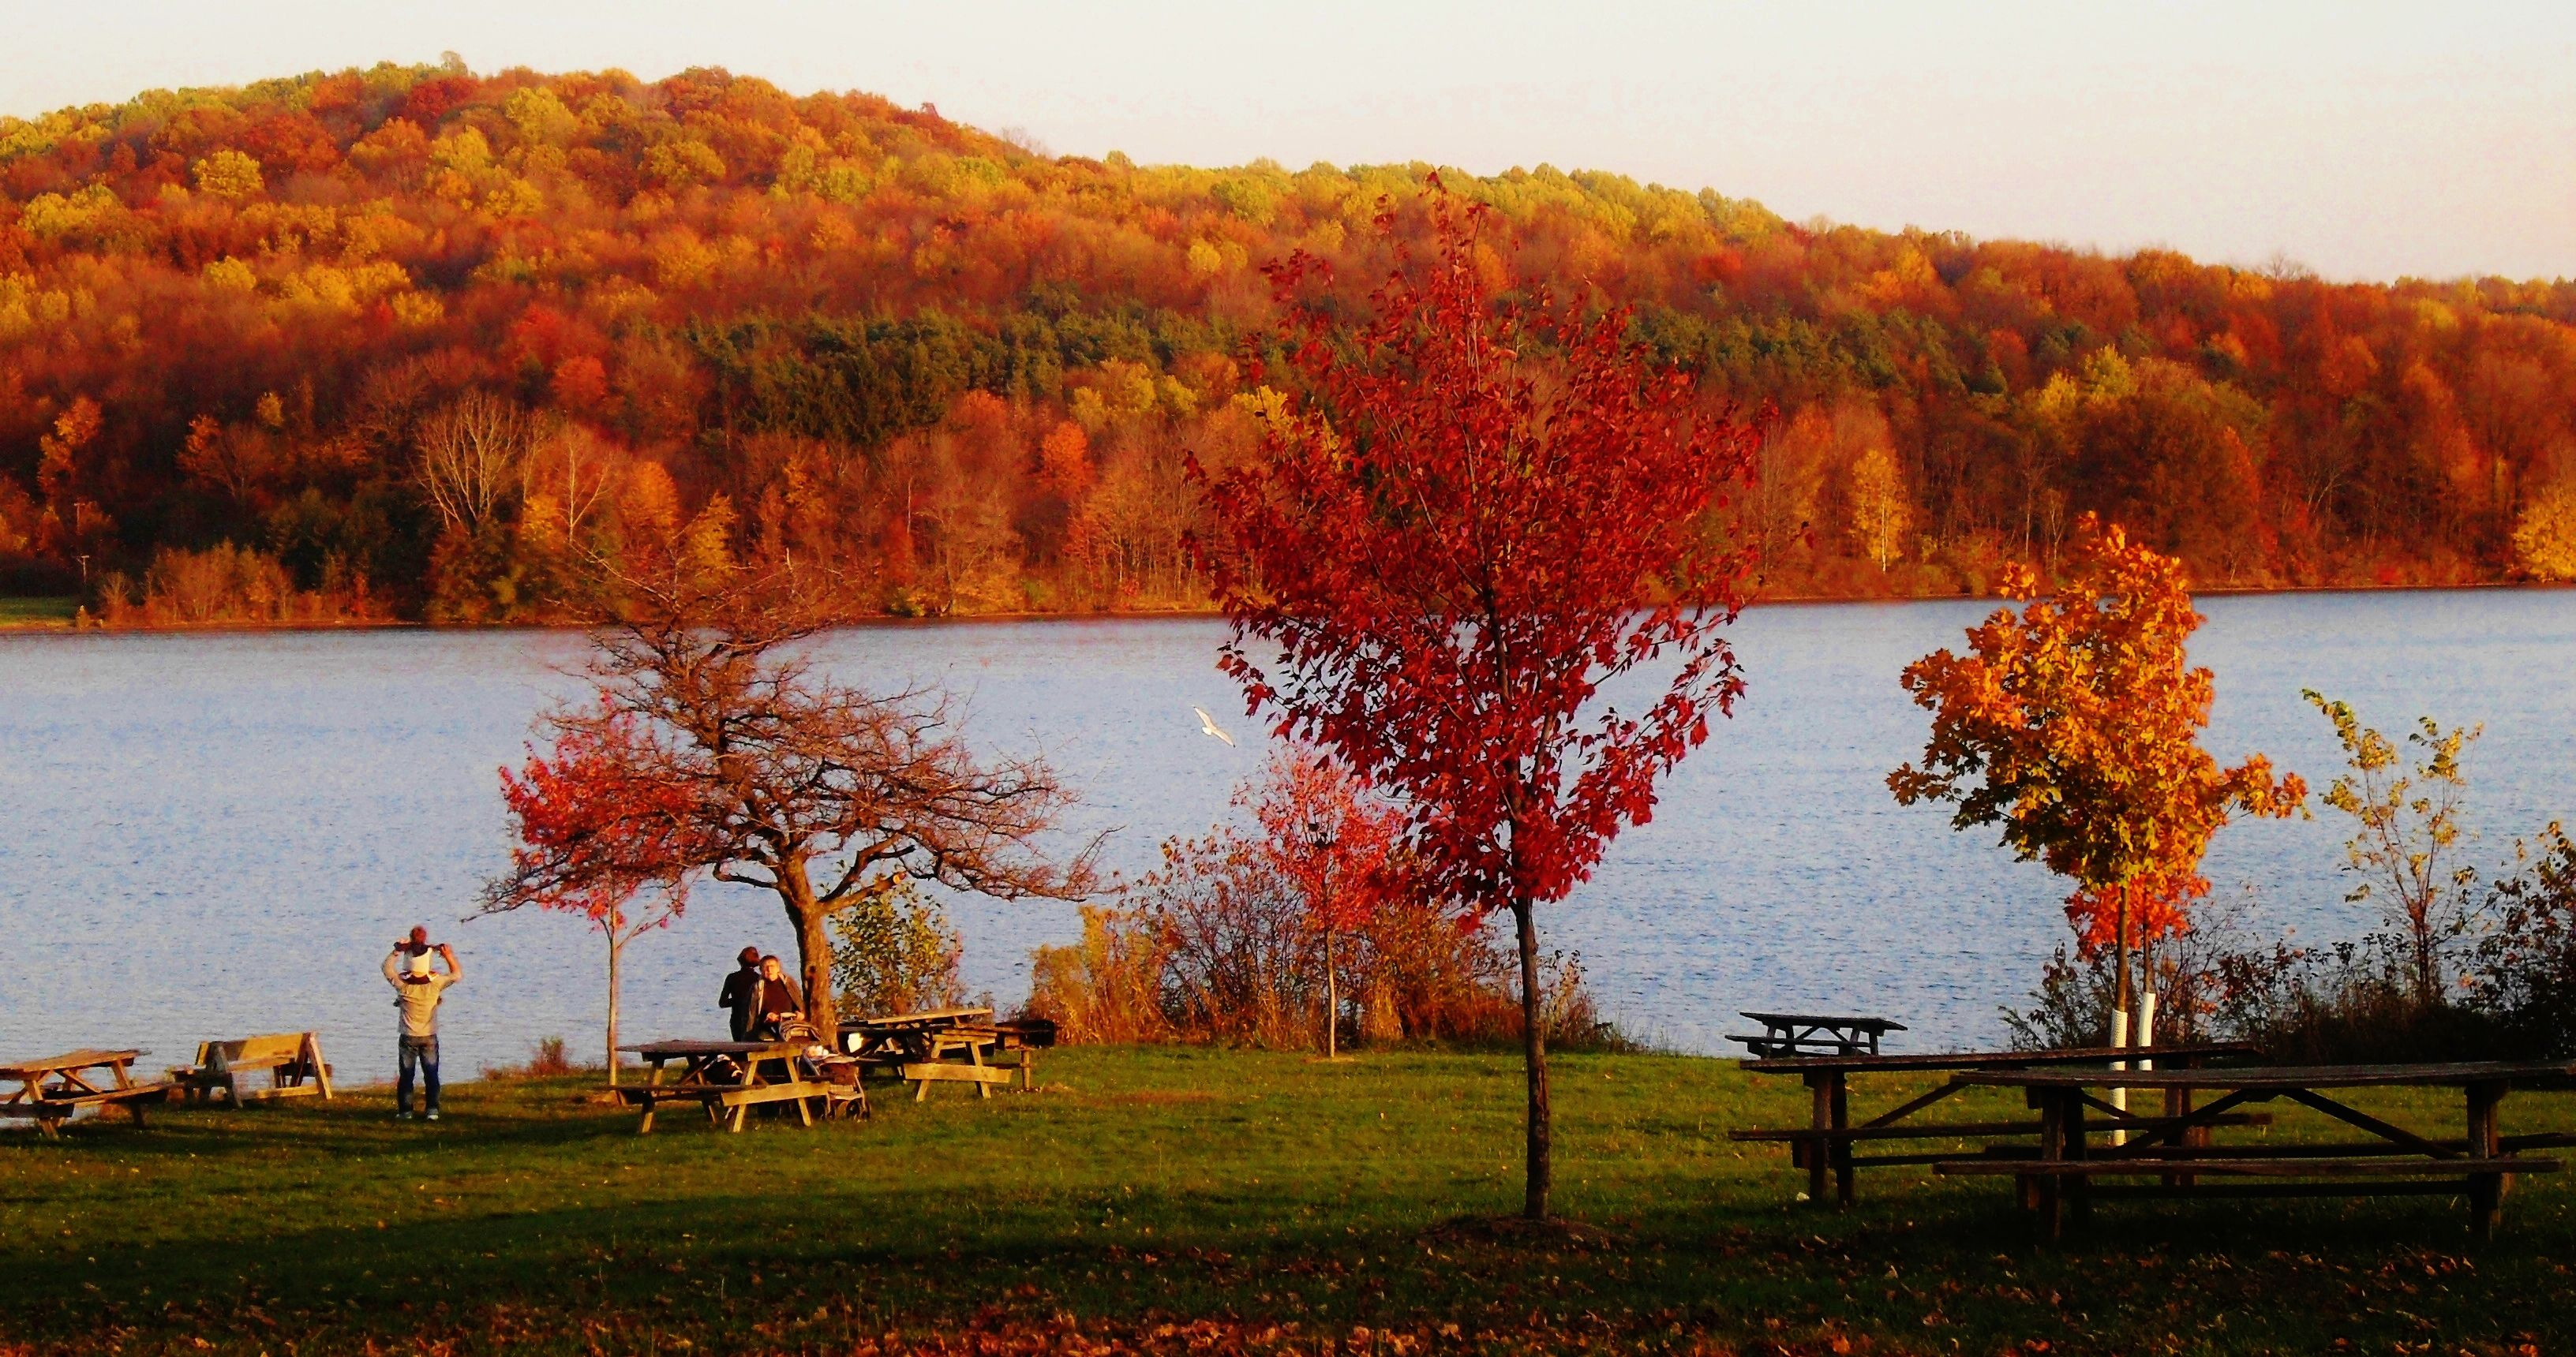 Image of Moraine State Park in the fall overlooking the lake where the trees have all turned fall colors.